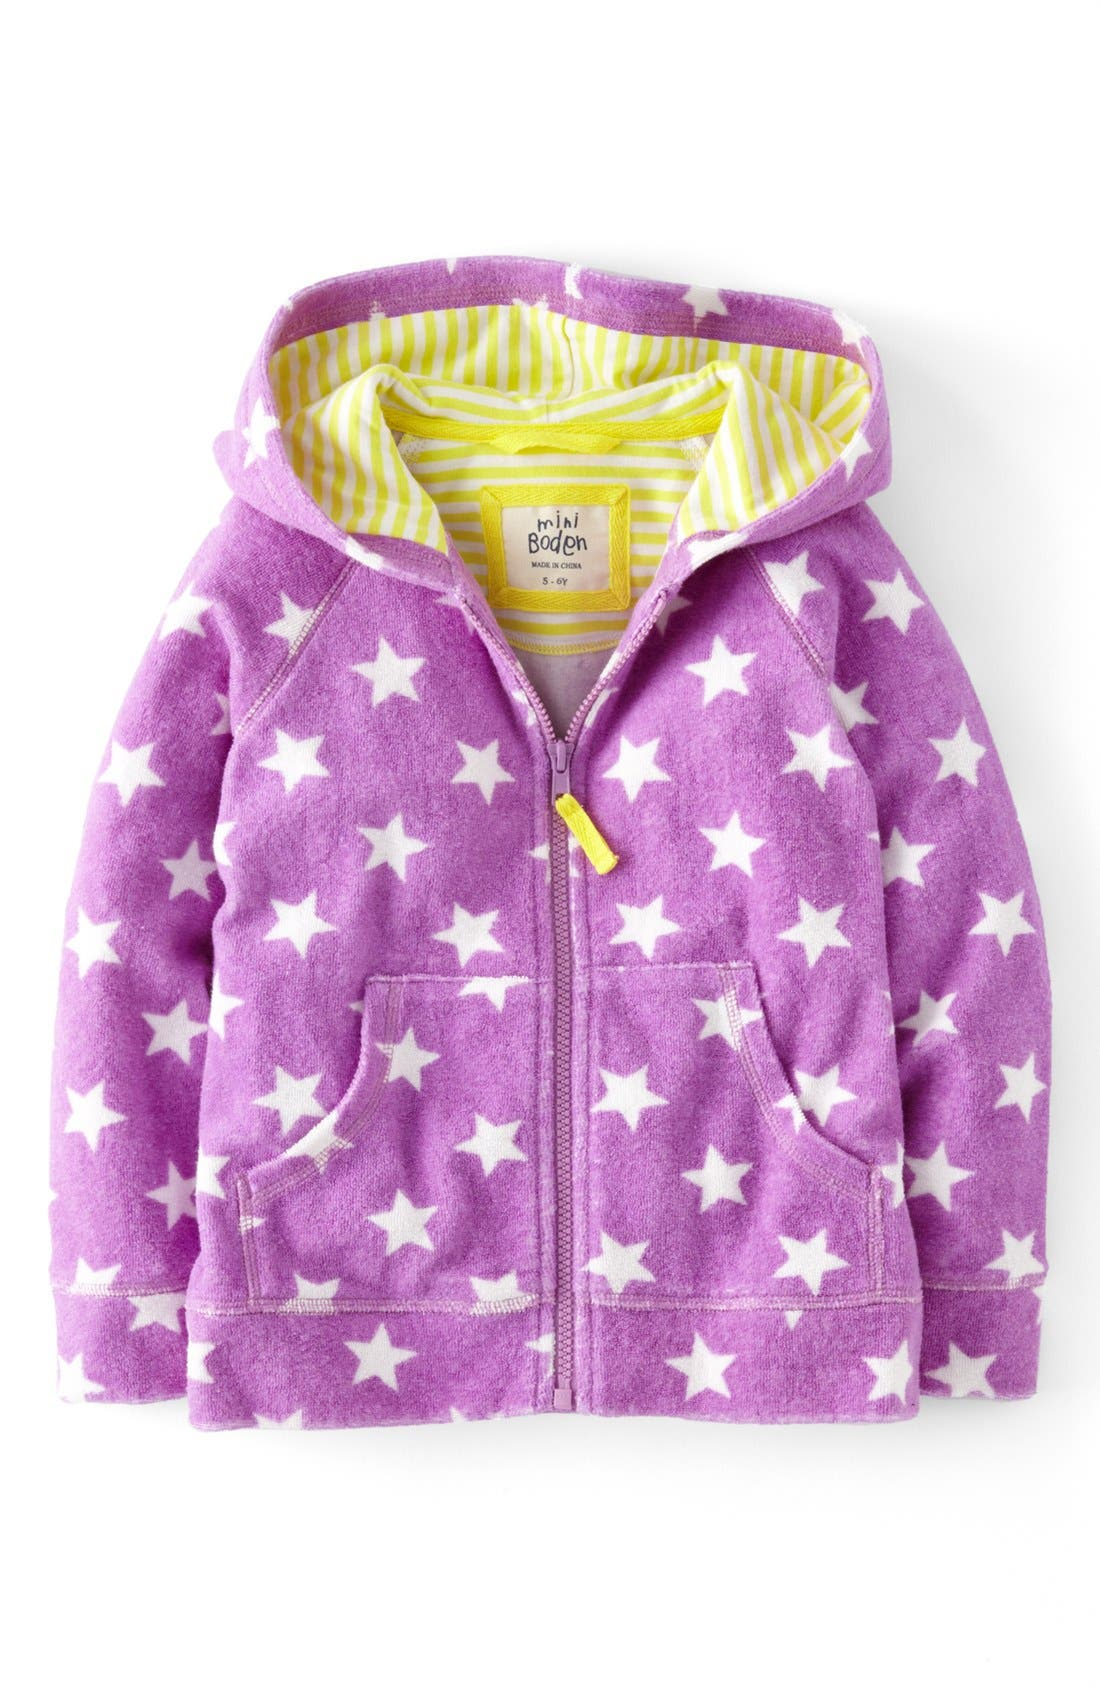 Alternate Image 1 Selected - Mini Boden 'Towelling' Hoodie (Toddler Girls, Little Girls & Big Girls)(Online Only)